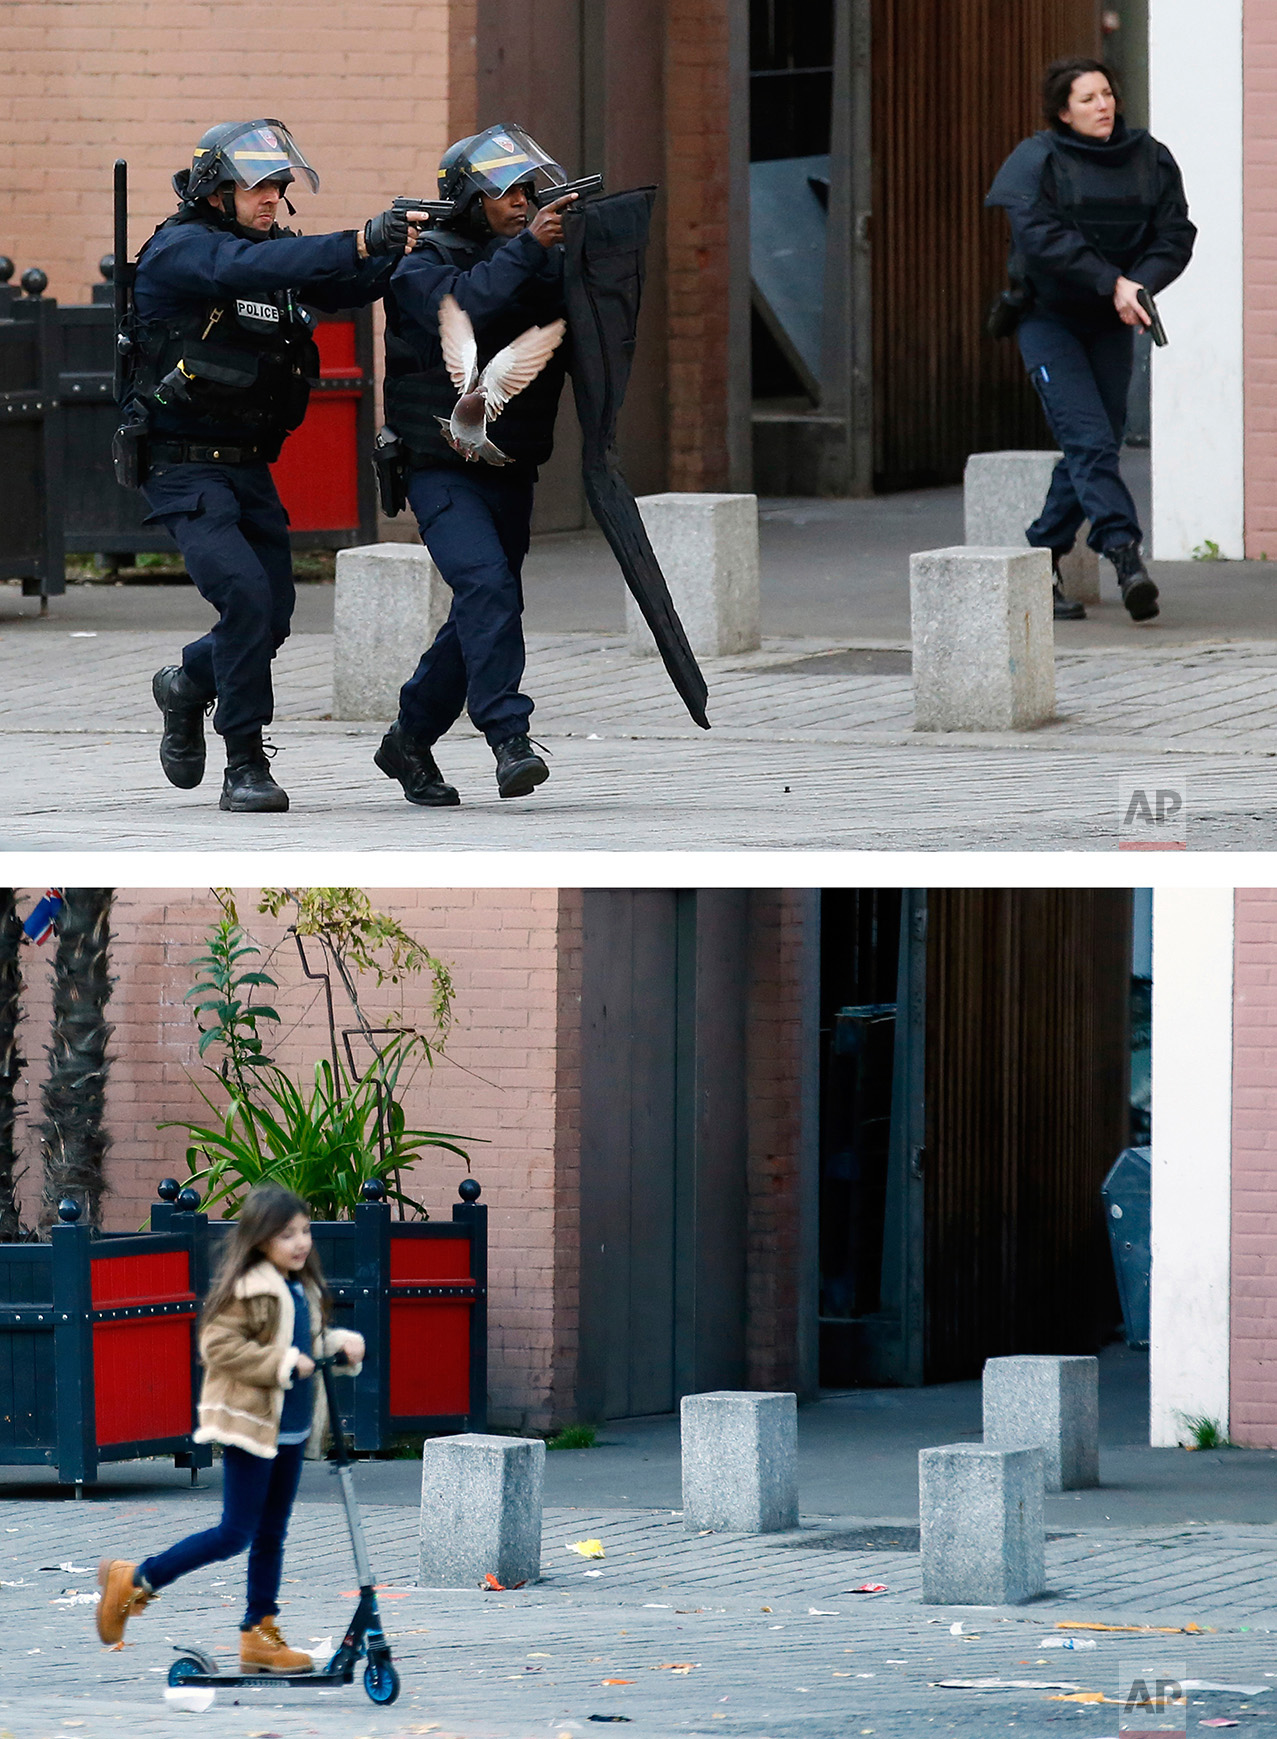 This combination of two photos shows a Wednesday, Nov. 18, 2015 photo, top, of police officers in Saint-Denis, a northern suburb of Paris after the Paris attacks, and a child traveling by scooter along the same street, bottom, on Sunday, Nov. 6, 2016. (AP Photo/Francois Mori, Francois Mori)